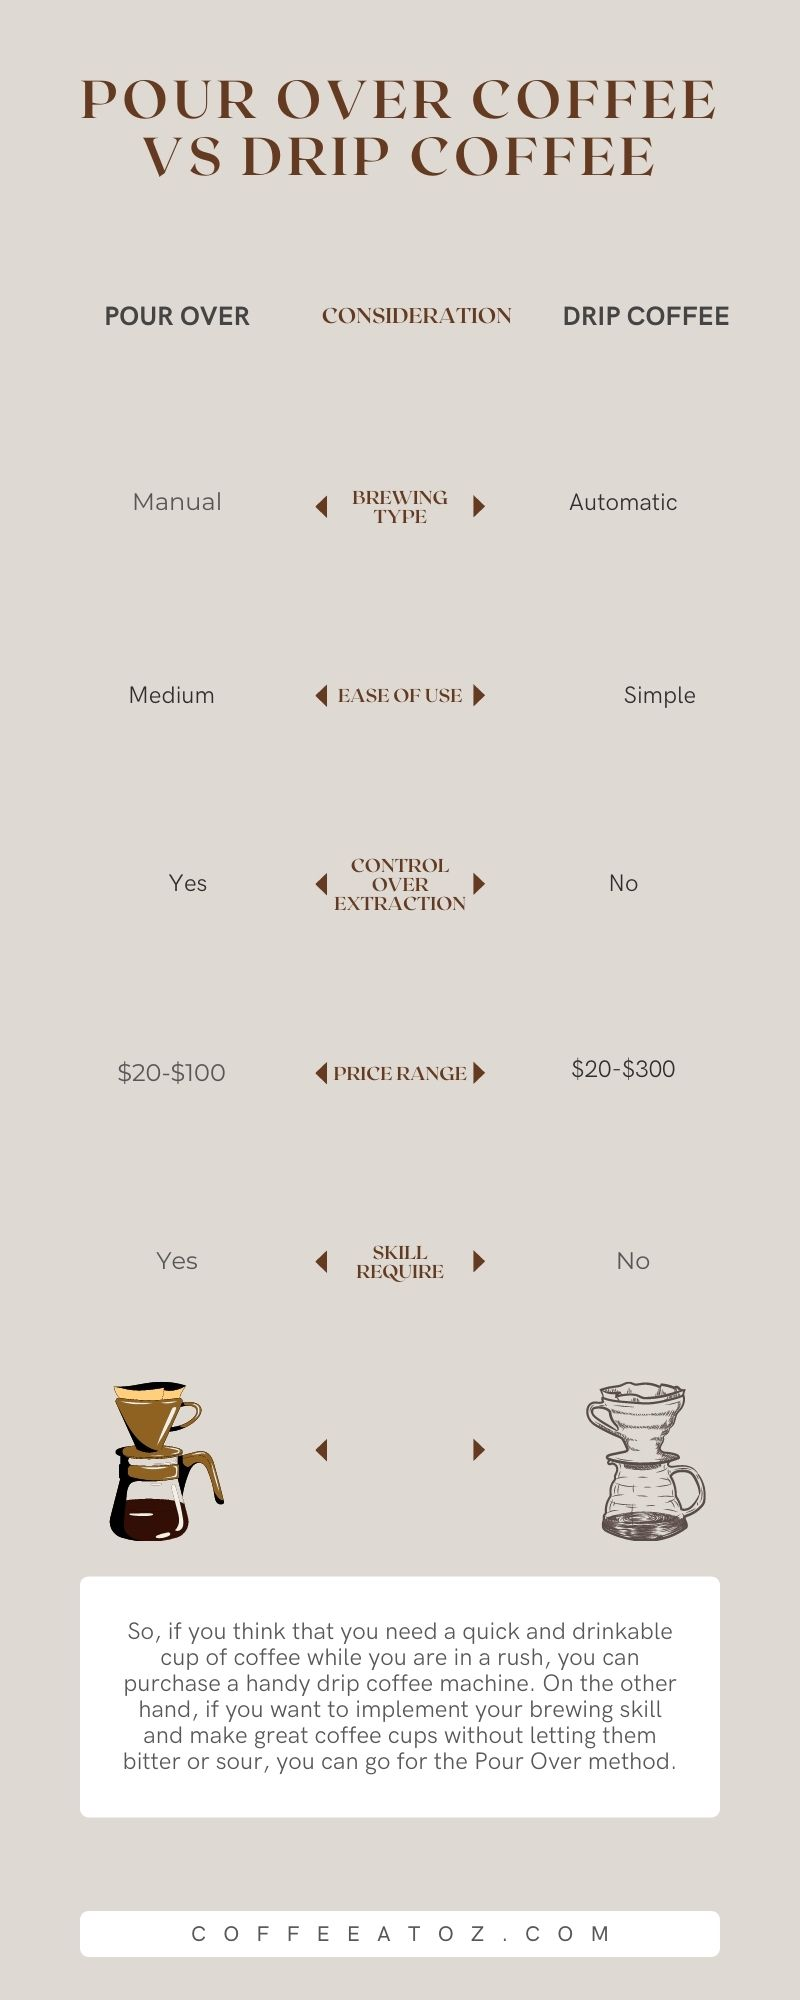 Pour Over Coffee VS Drip Coffee